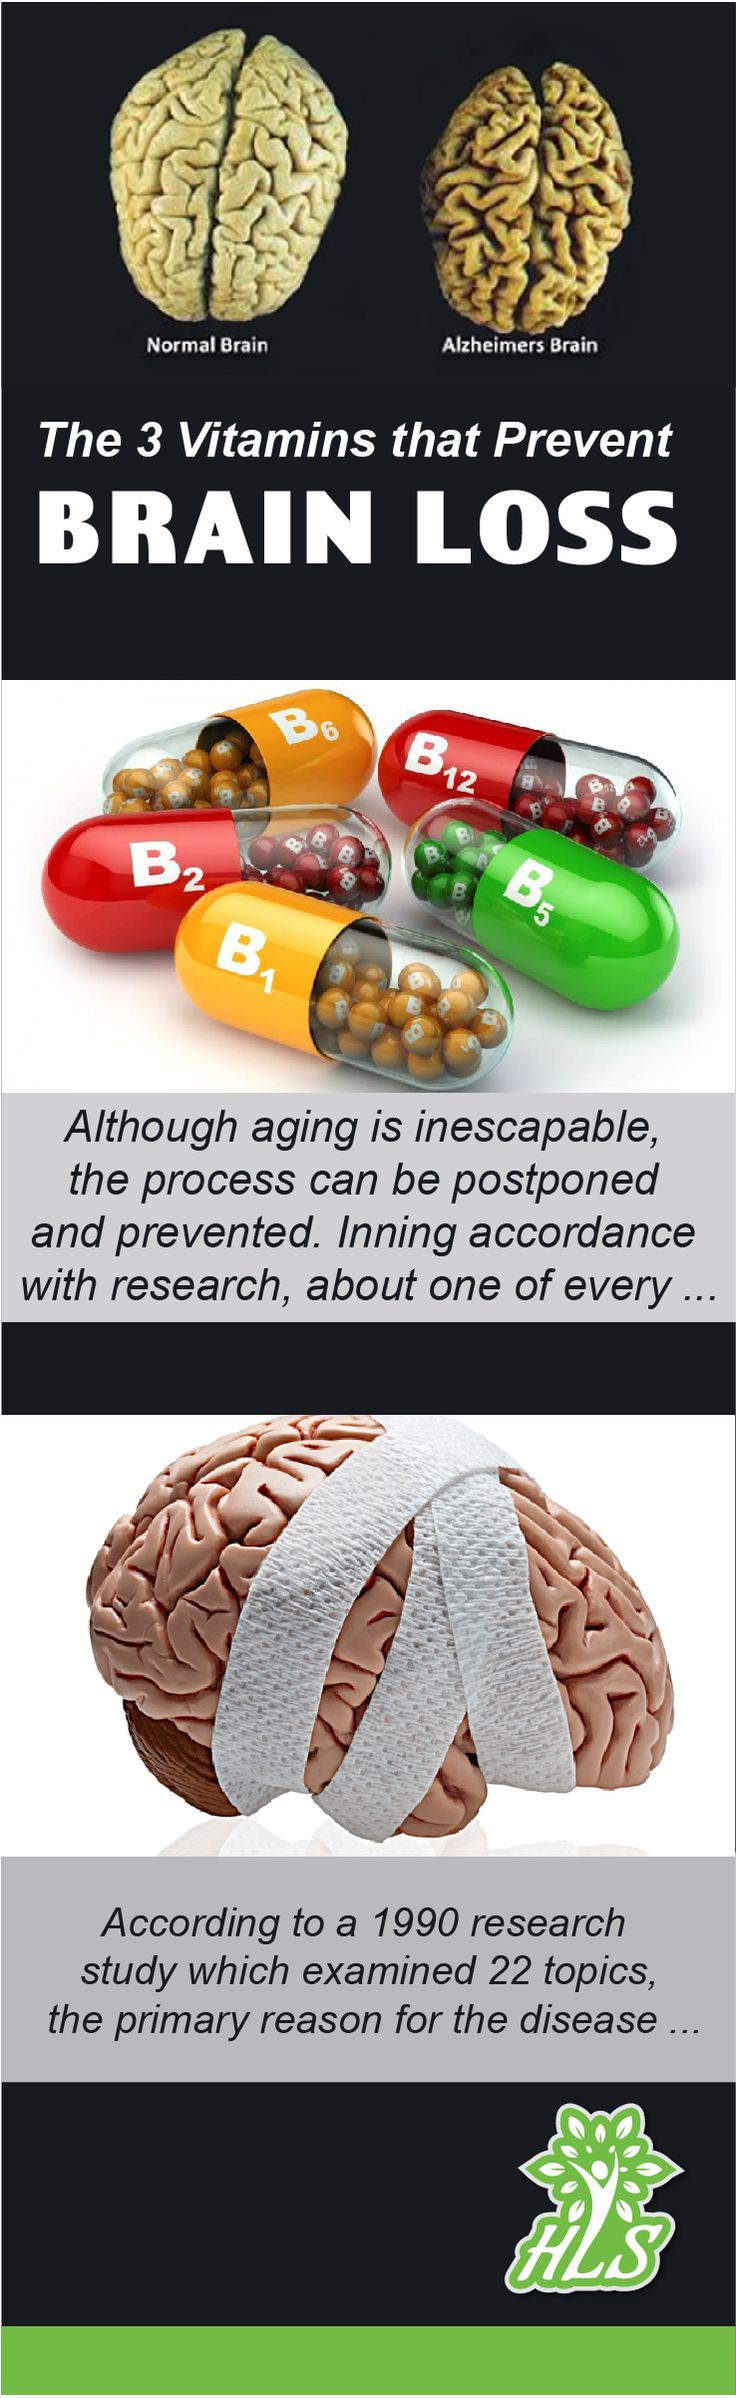 Although aging is inescapable, the process can be postponed and prevented. Inning accordance with research, about one of every five individuals worldwide will suffer from dementia or Alzheimer's illness before they hit 70, and although there's no remedy for this progressive mental disease, it's effects can be managed. According to a 1990 research study which…